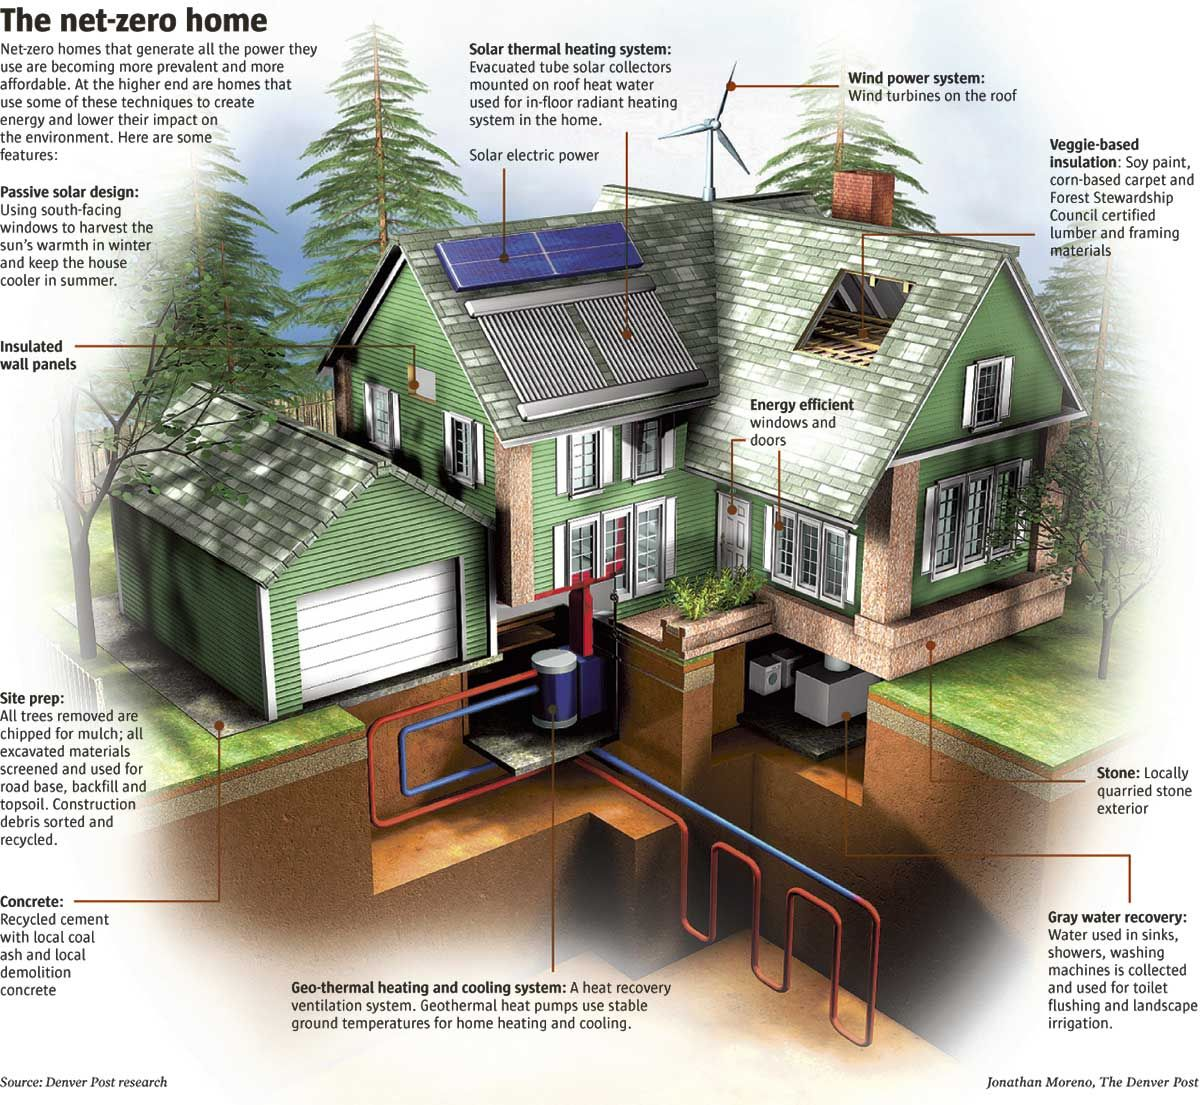 Green Home Design Ideas: Net Zero Home Building